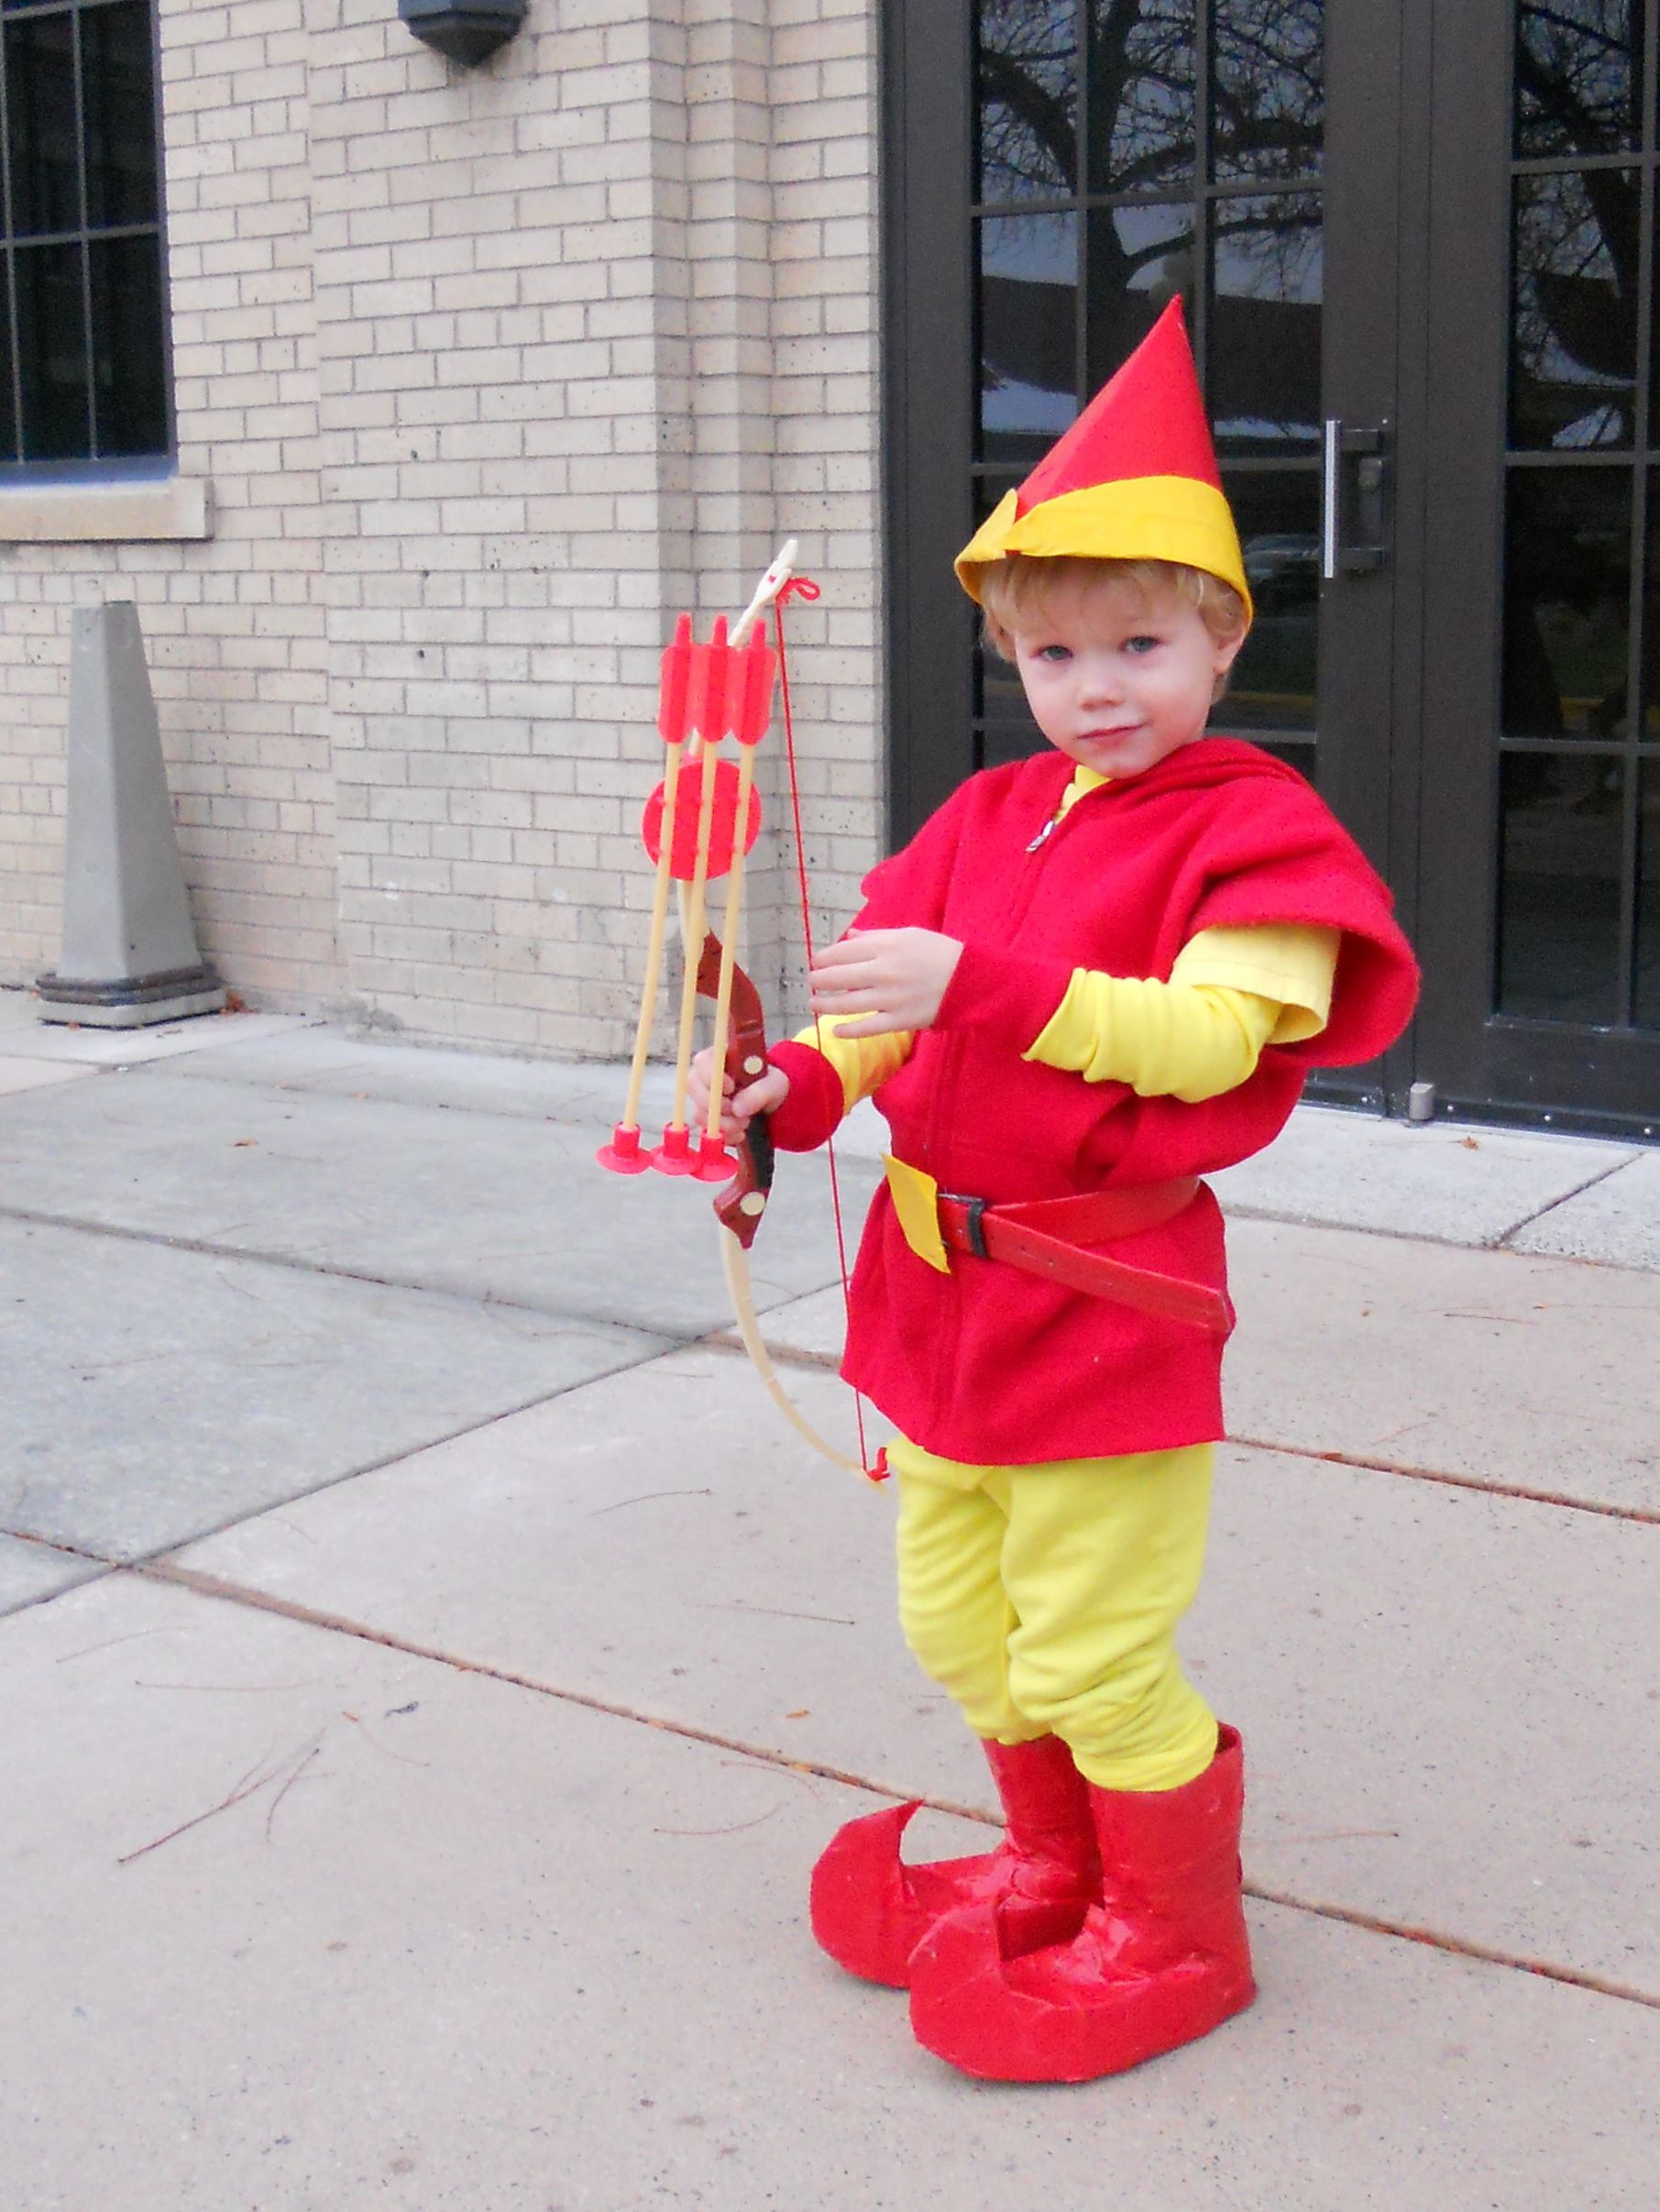 Fire Elf costume  (fire elves are characters from the game Wizard